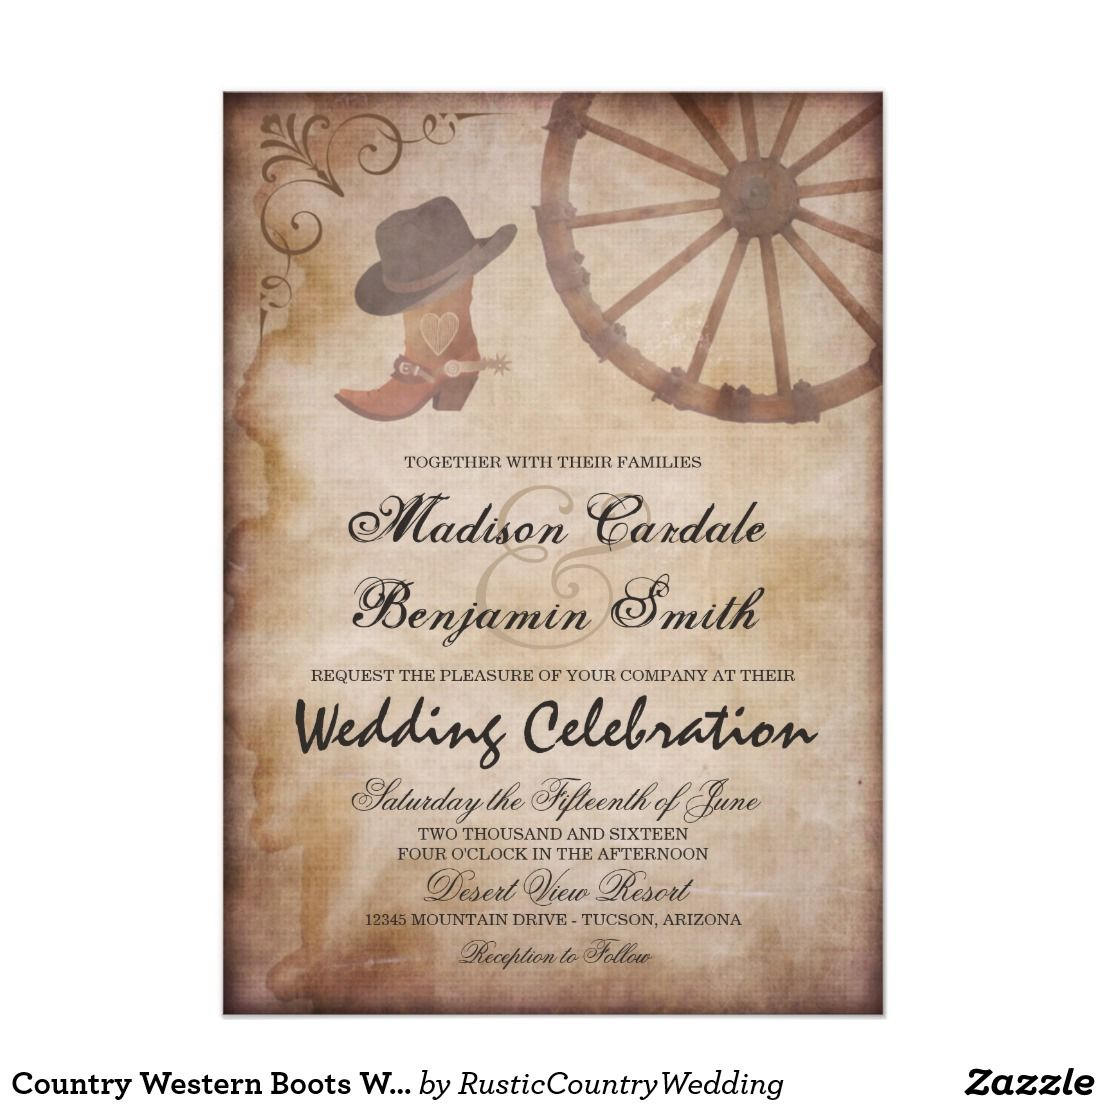 Country Western Boots Wagon Wheel Wedding Invite Country Wedding